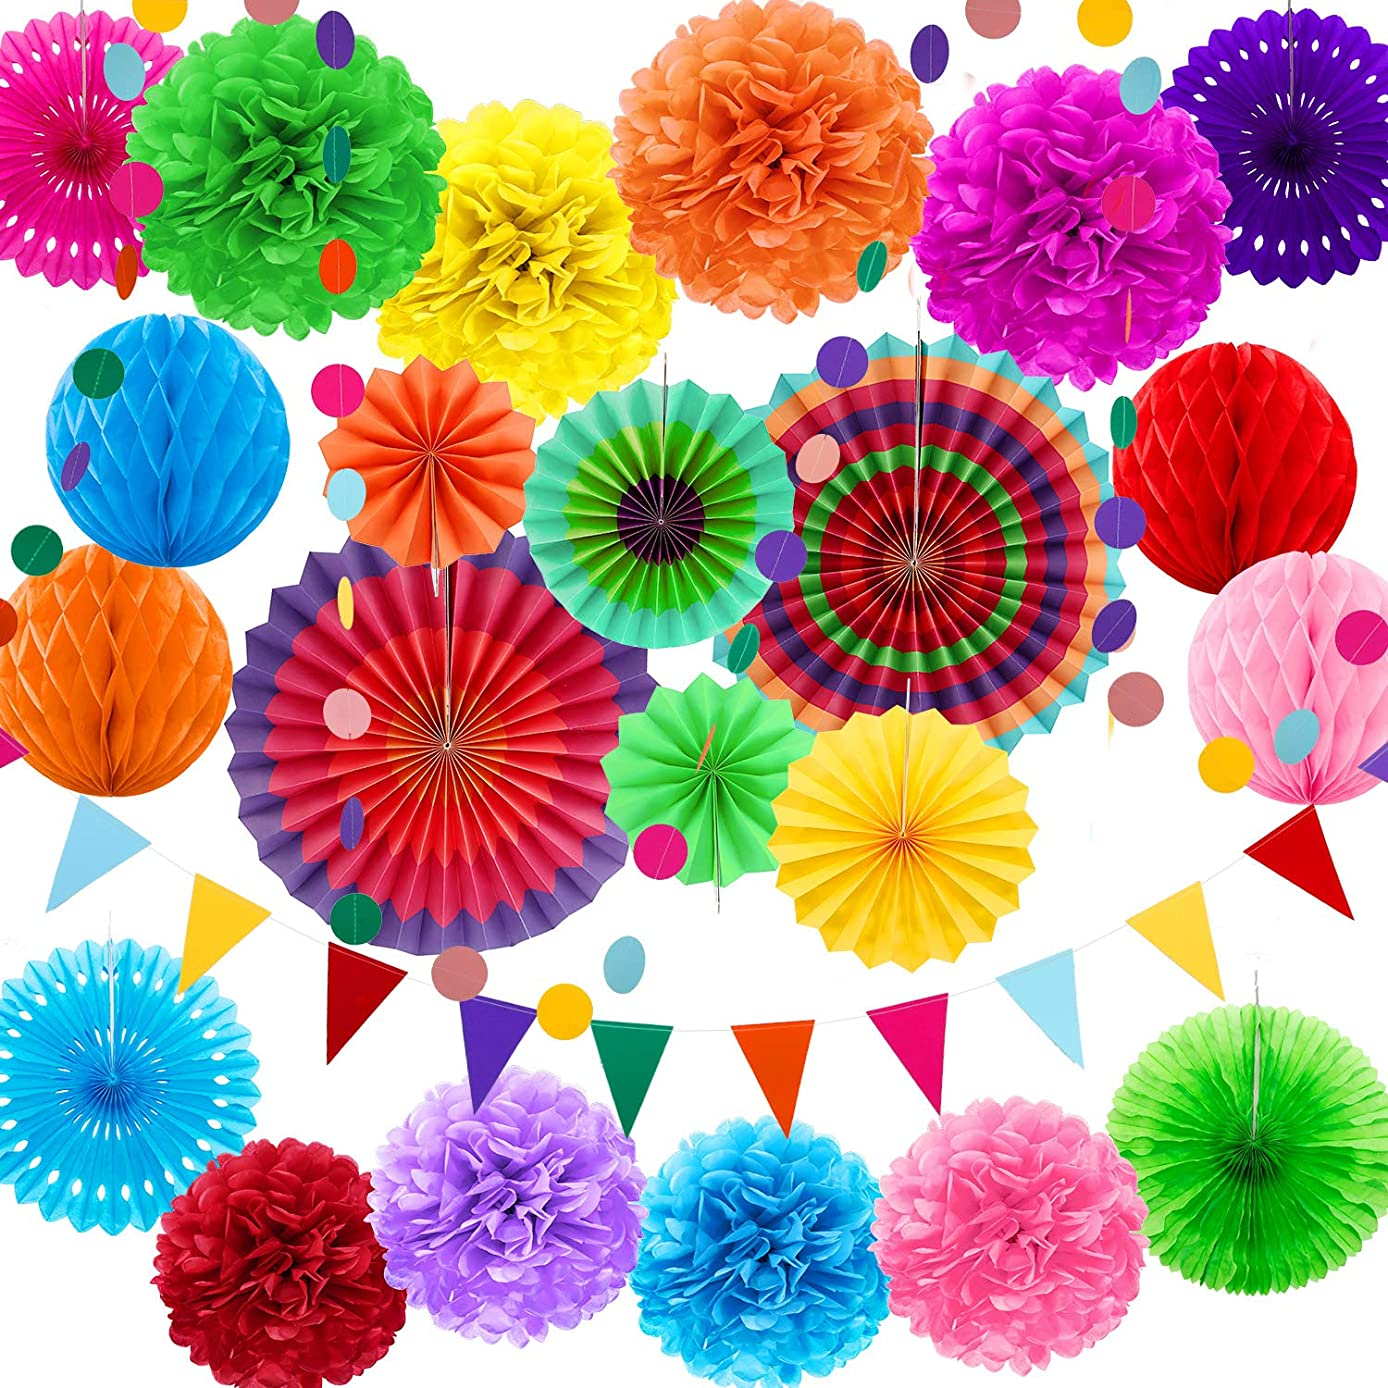 25 Pieces Mexican Fiesta Theme Party Decorations Multicolor Paper Fans Pom Poms Flowers Garlands String Circle Dot Triangle Bunting Flags Honeycomb Ball Rainbow Party Supplies for Mexican Fiesta